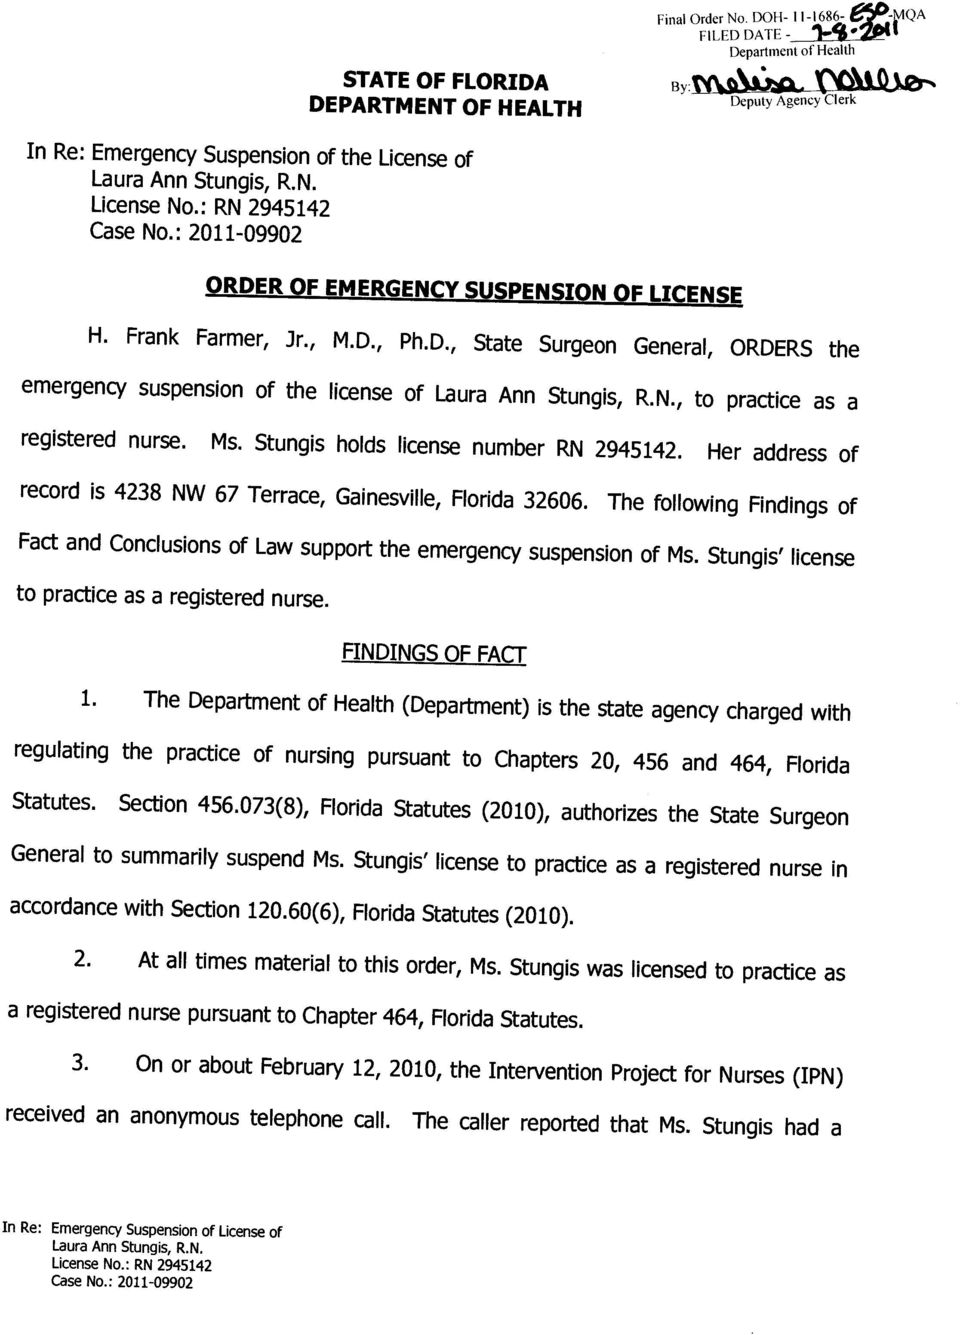 D., State Surgeon General, ORDERS the emergency suspension of the license of, to practice as a registered nurse. Ms. Stungis holds license number RN 2945142.